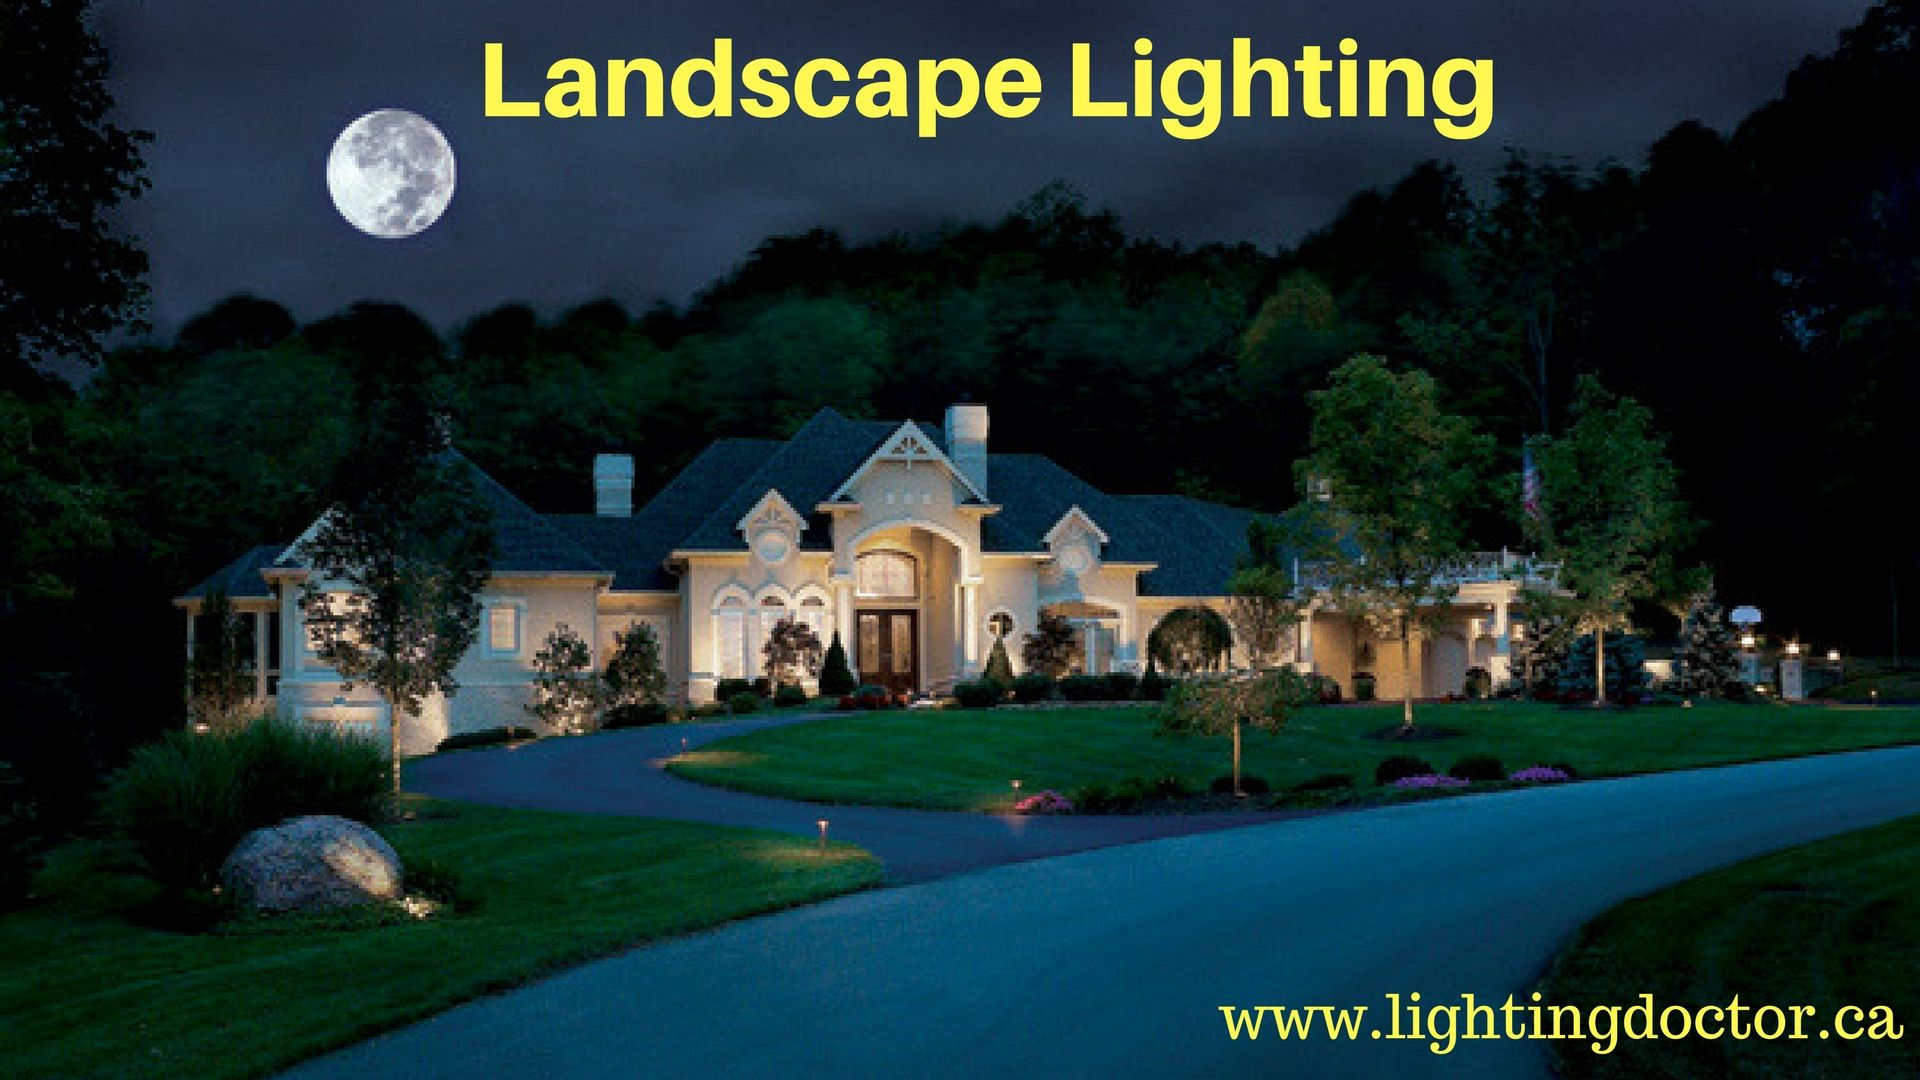 High quality landscape lighting canada high quality landscape high quality landscape lighting canada high quality landscape lighting tends lighting doctor that enhance aloadofball Images